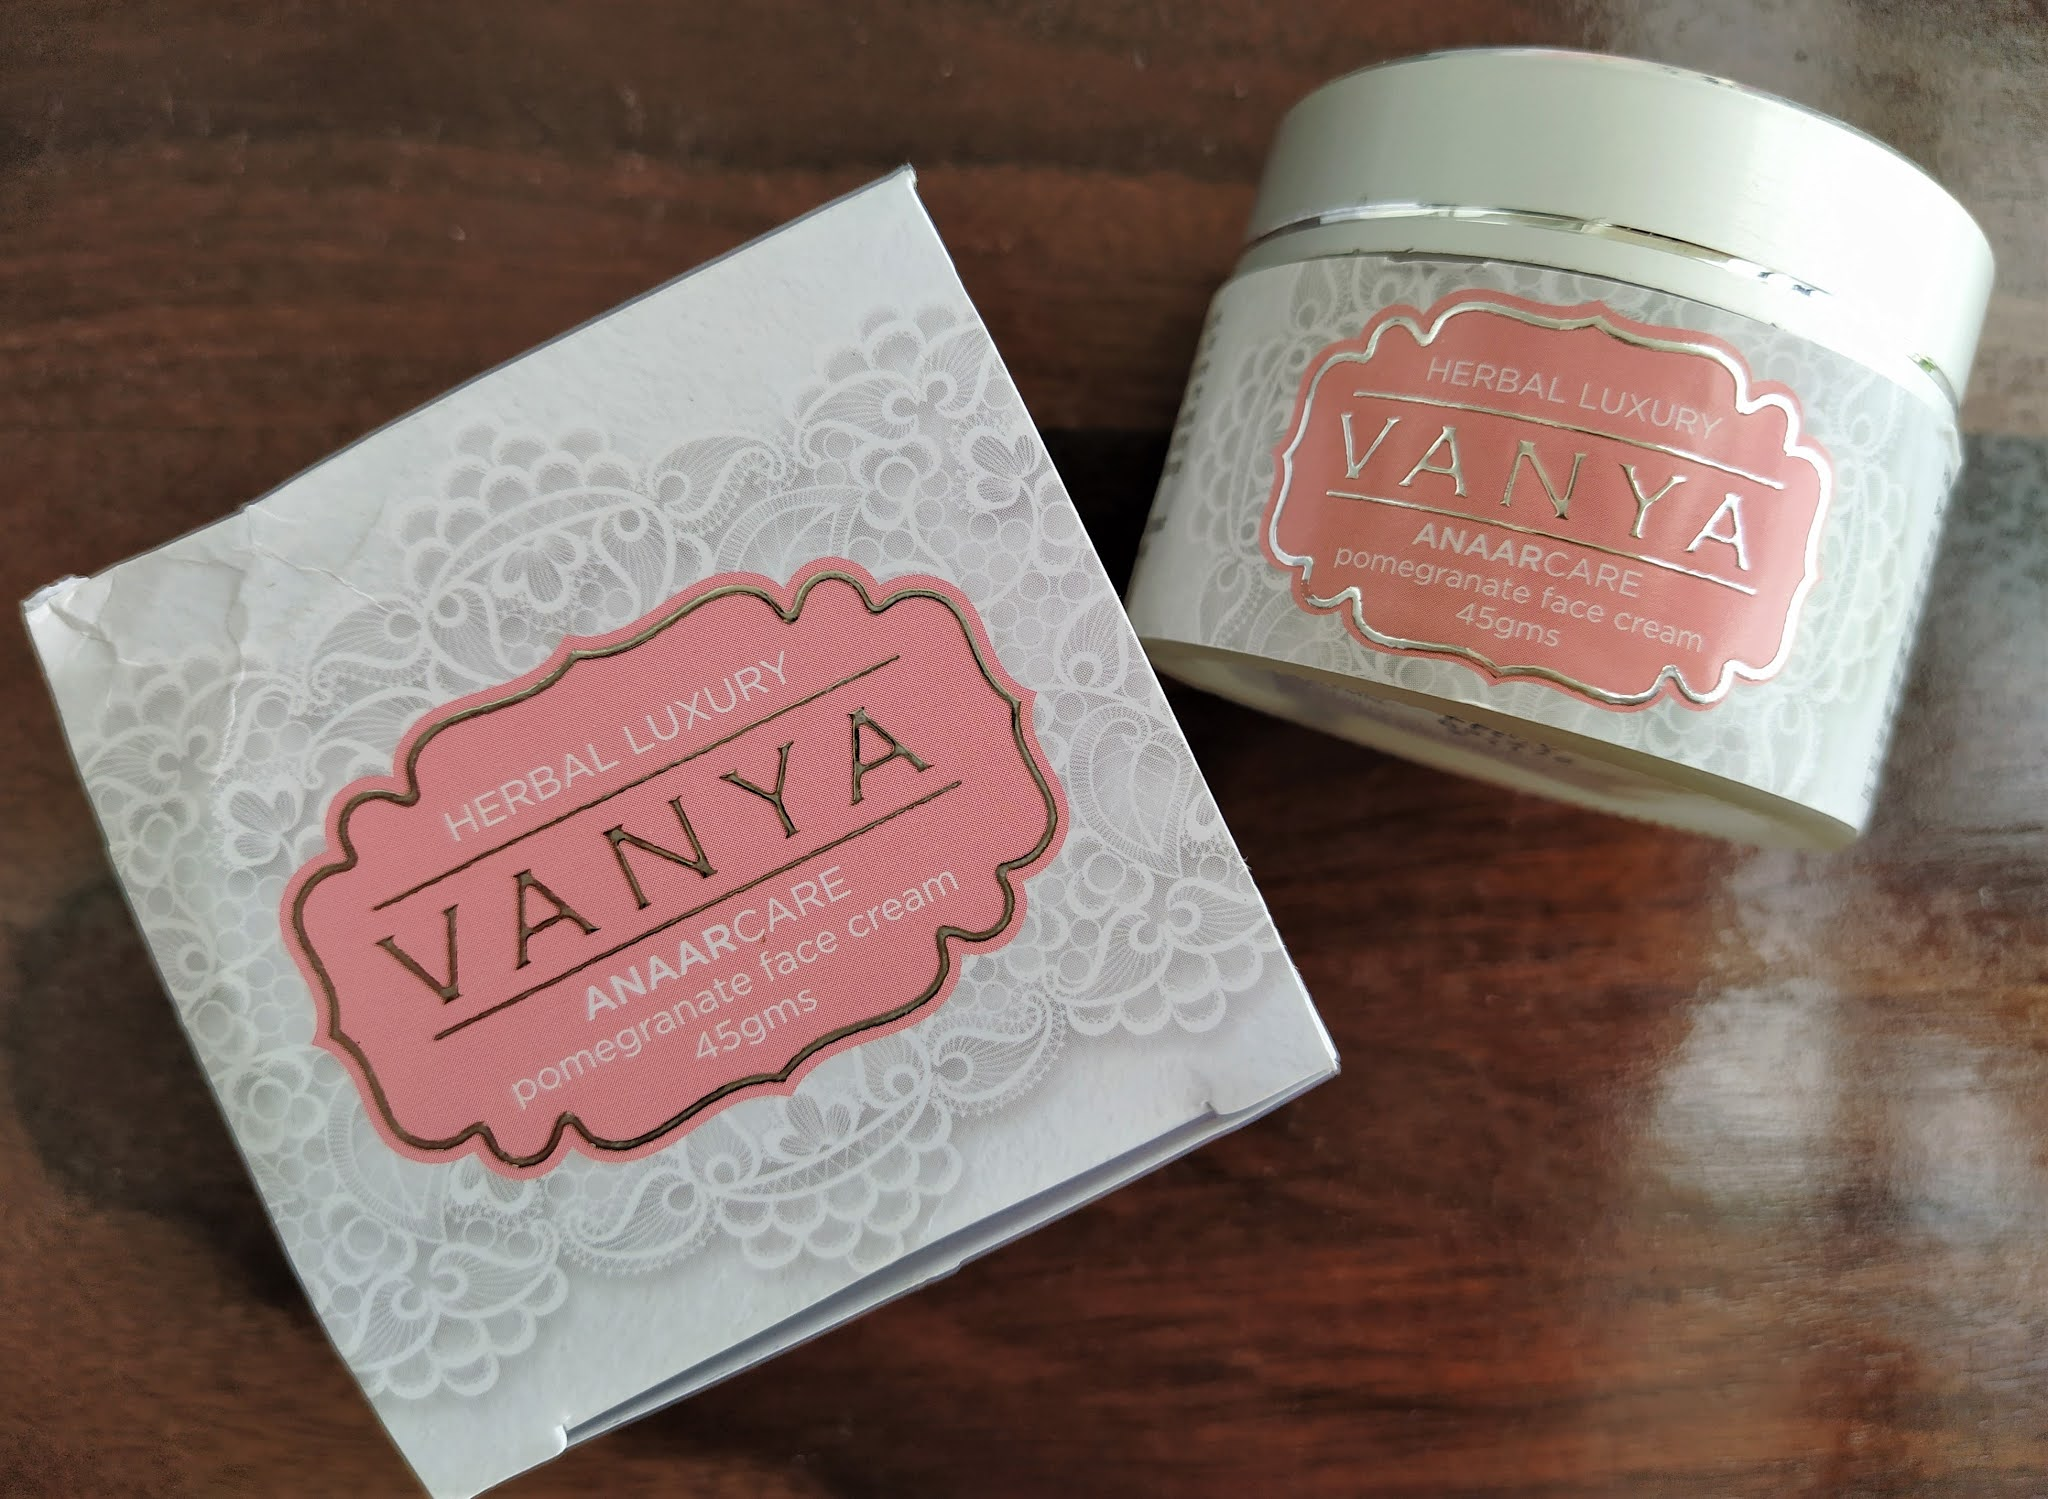 Vanya herbal face cream review